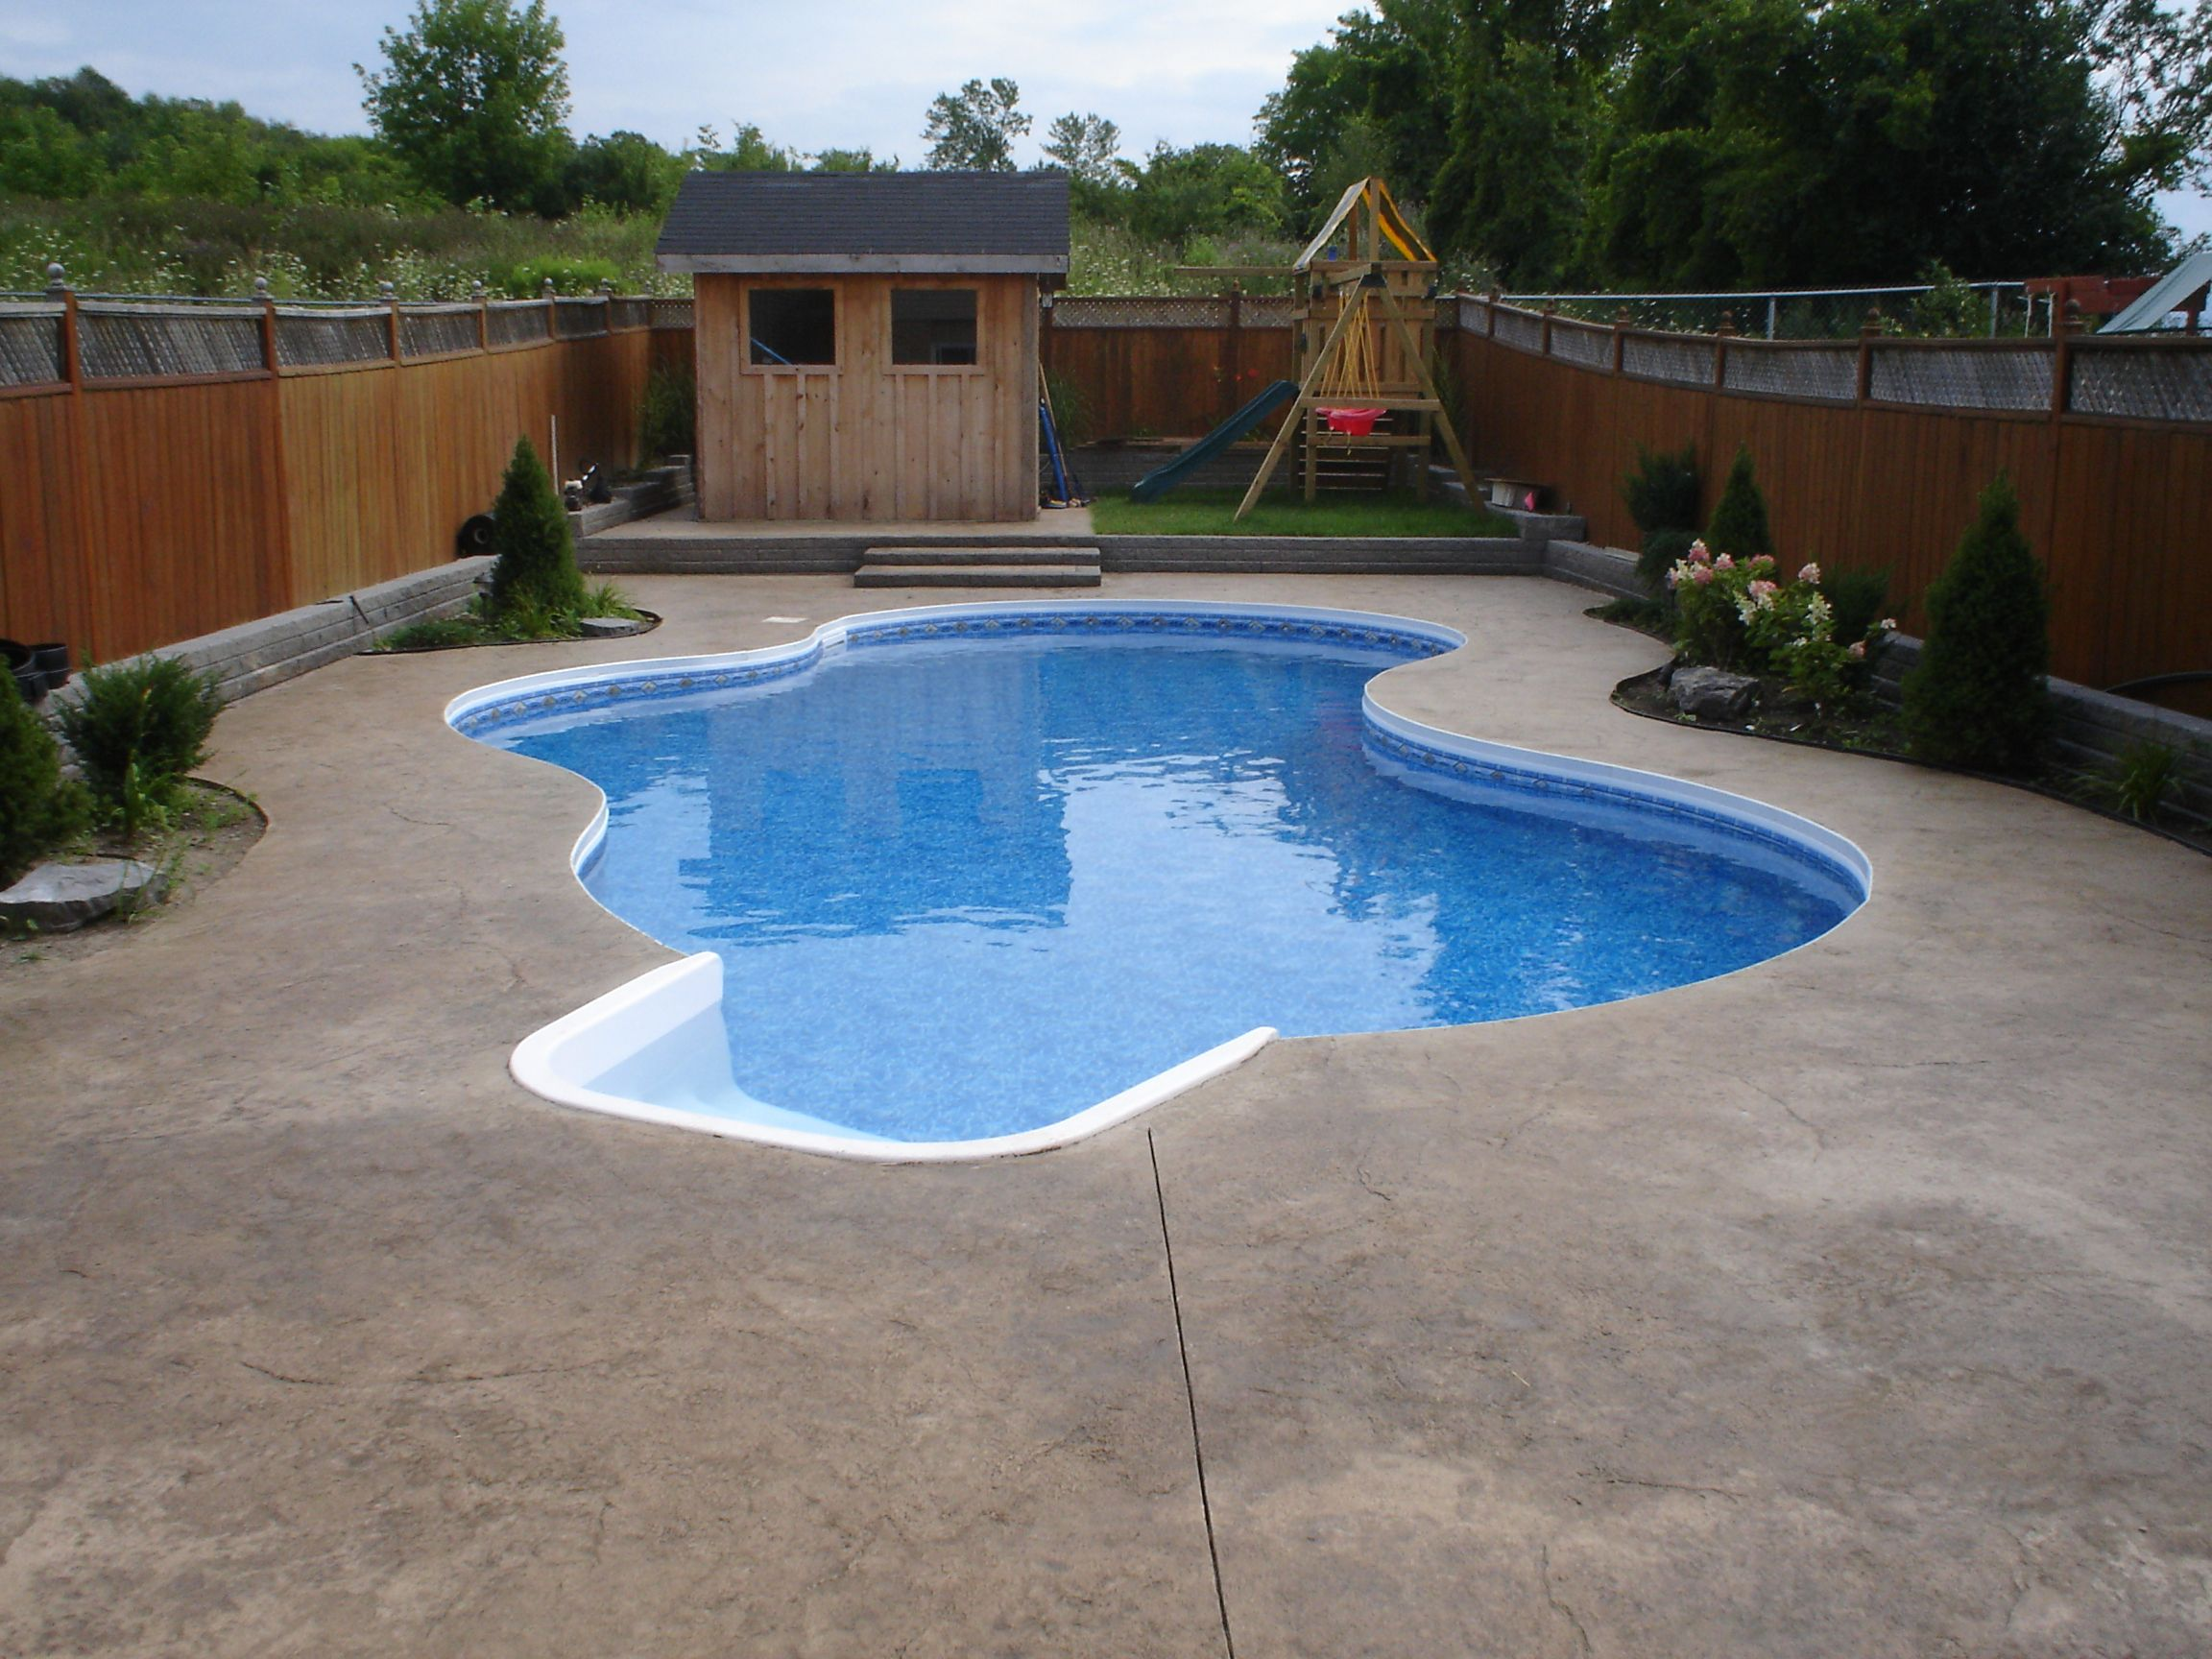 Inground Pool Kits As Fresh Space: Unique Wooden Fencing Unit Design Plan  Pool Shaped Applied Backyard Area Of Modern Home Living